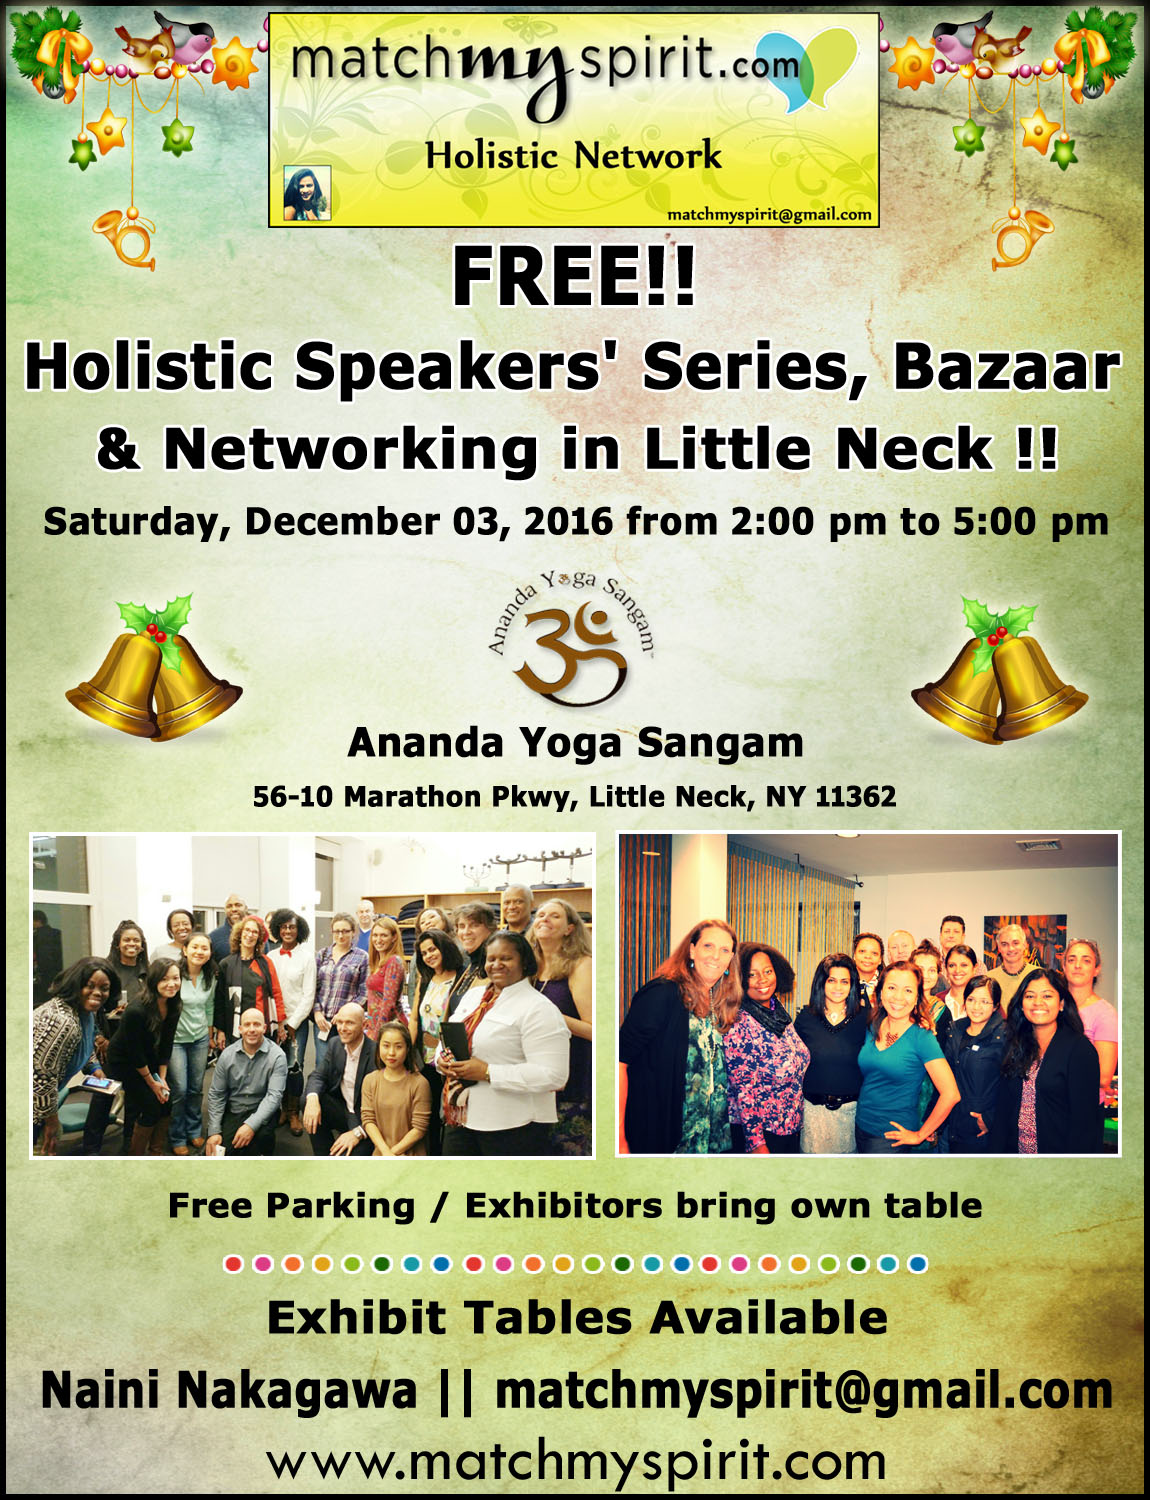 FREE!! Holistic Speakers Series, Bazaar & Networking in Little Neck